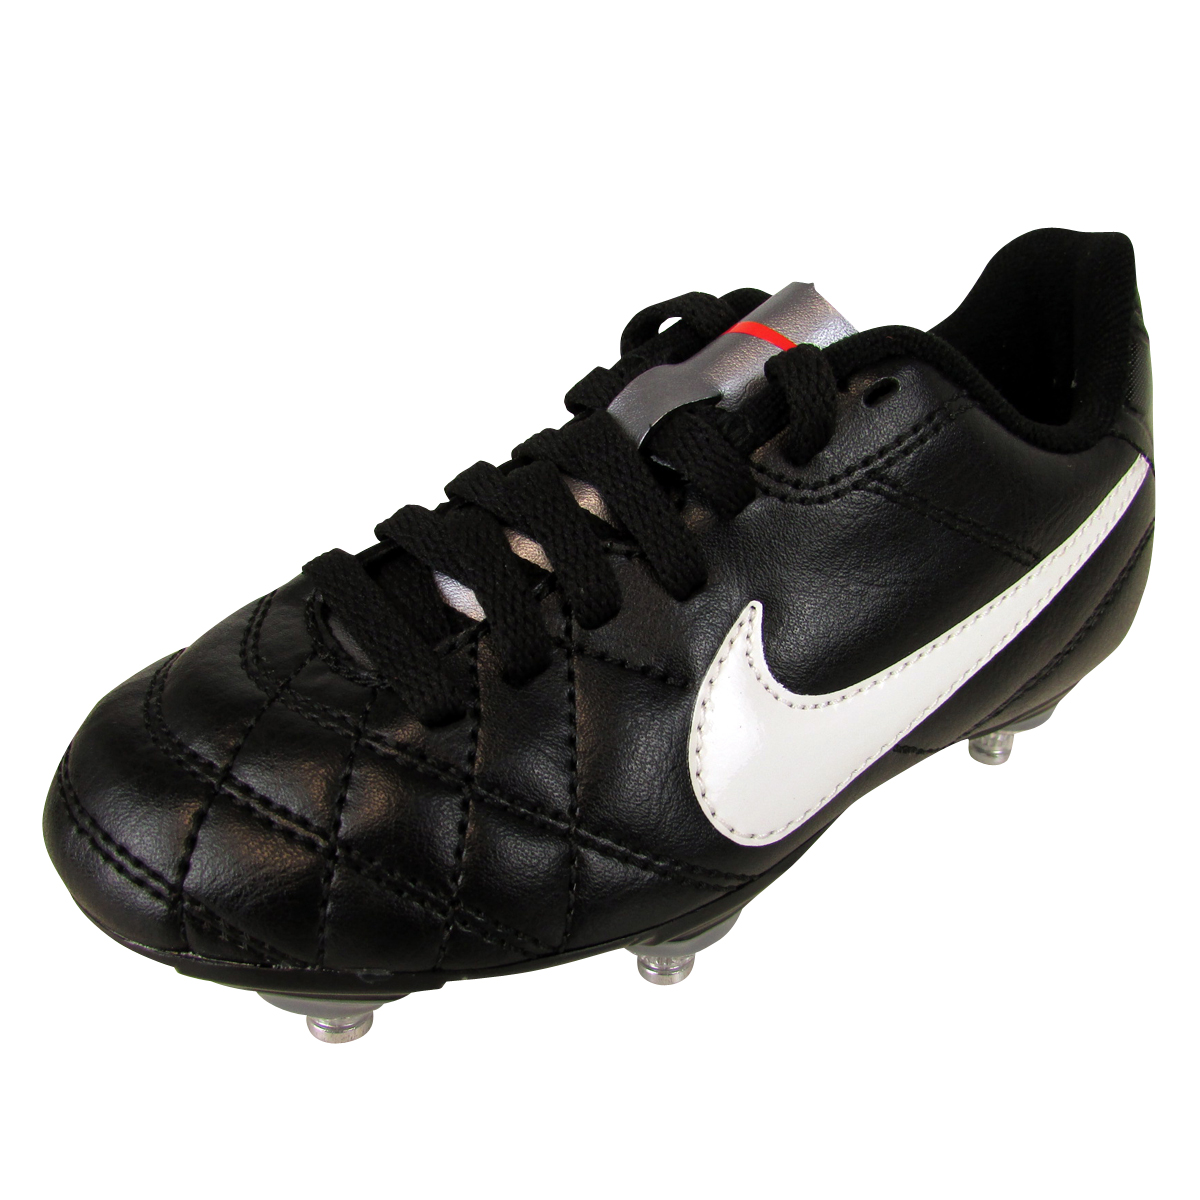 separation shoes 3f845 1ce79 Details about Boys Nike Tiempo Rio Black SG Soft Ground Football Boots  Junior Sizes Kids JR